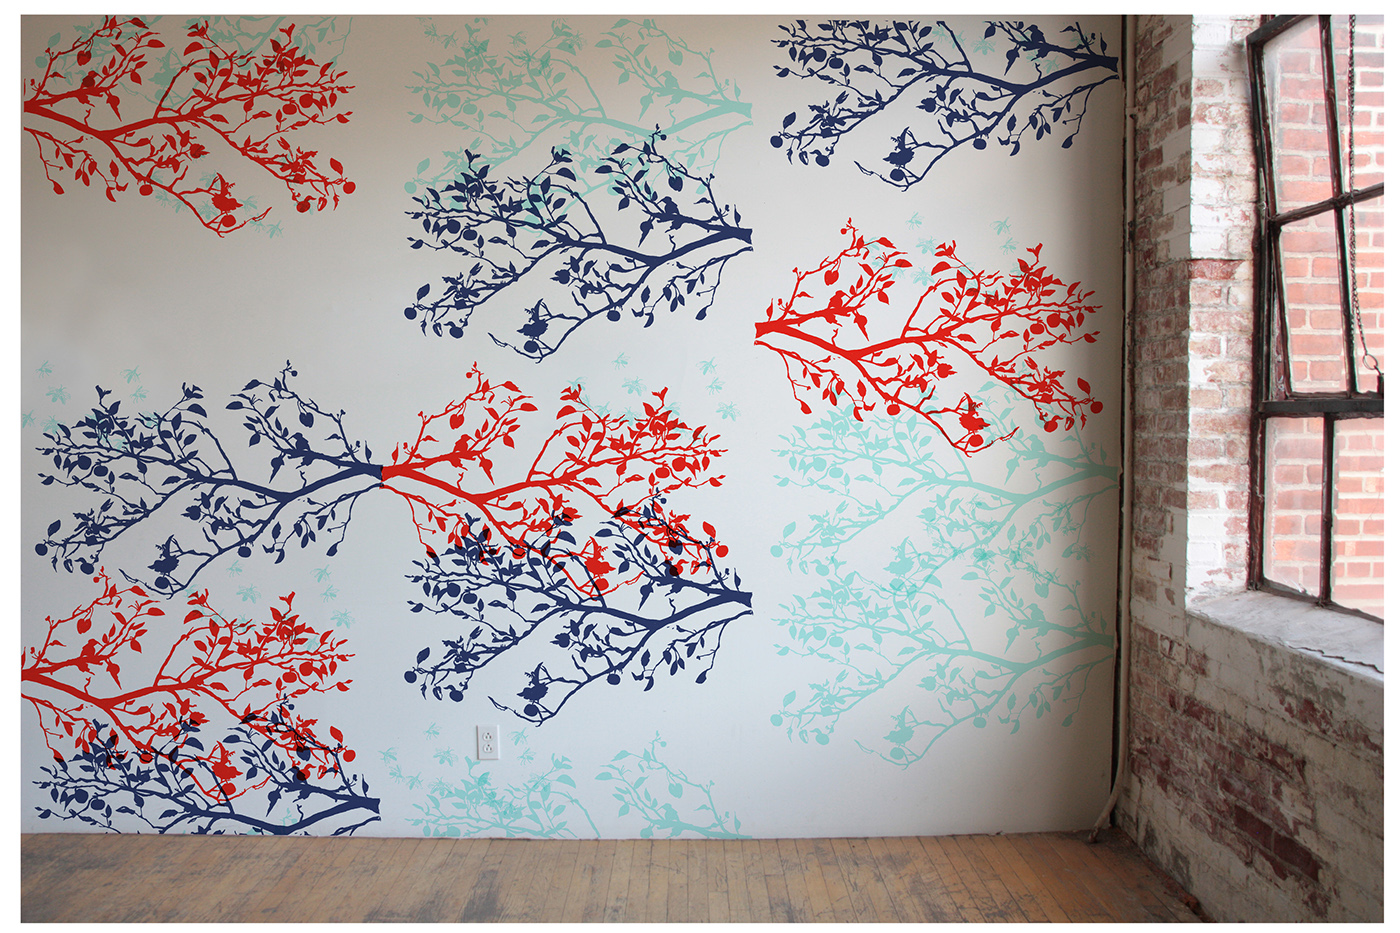 Silk screen printed wallpaper collection on behance for Printed wallpaper